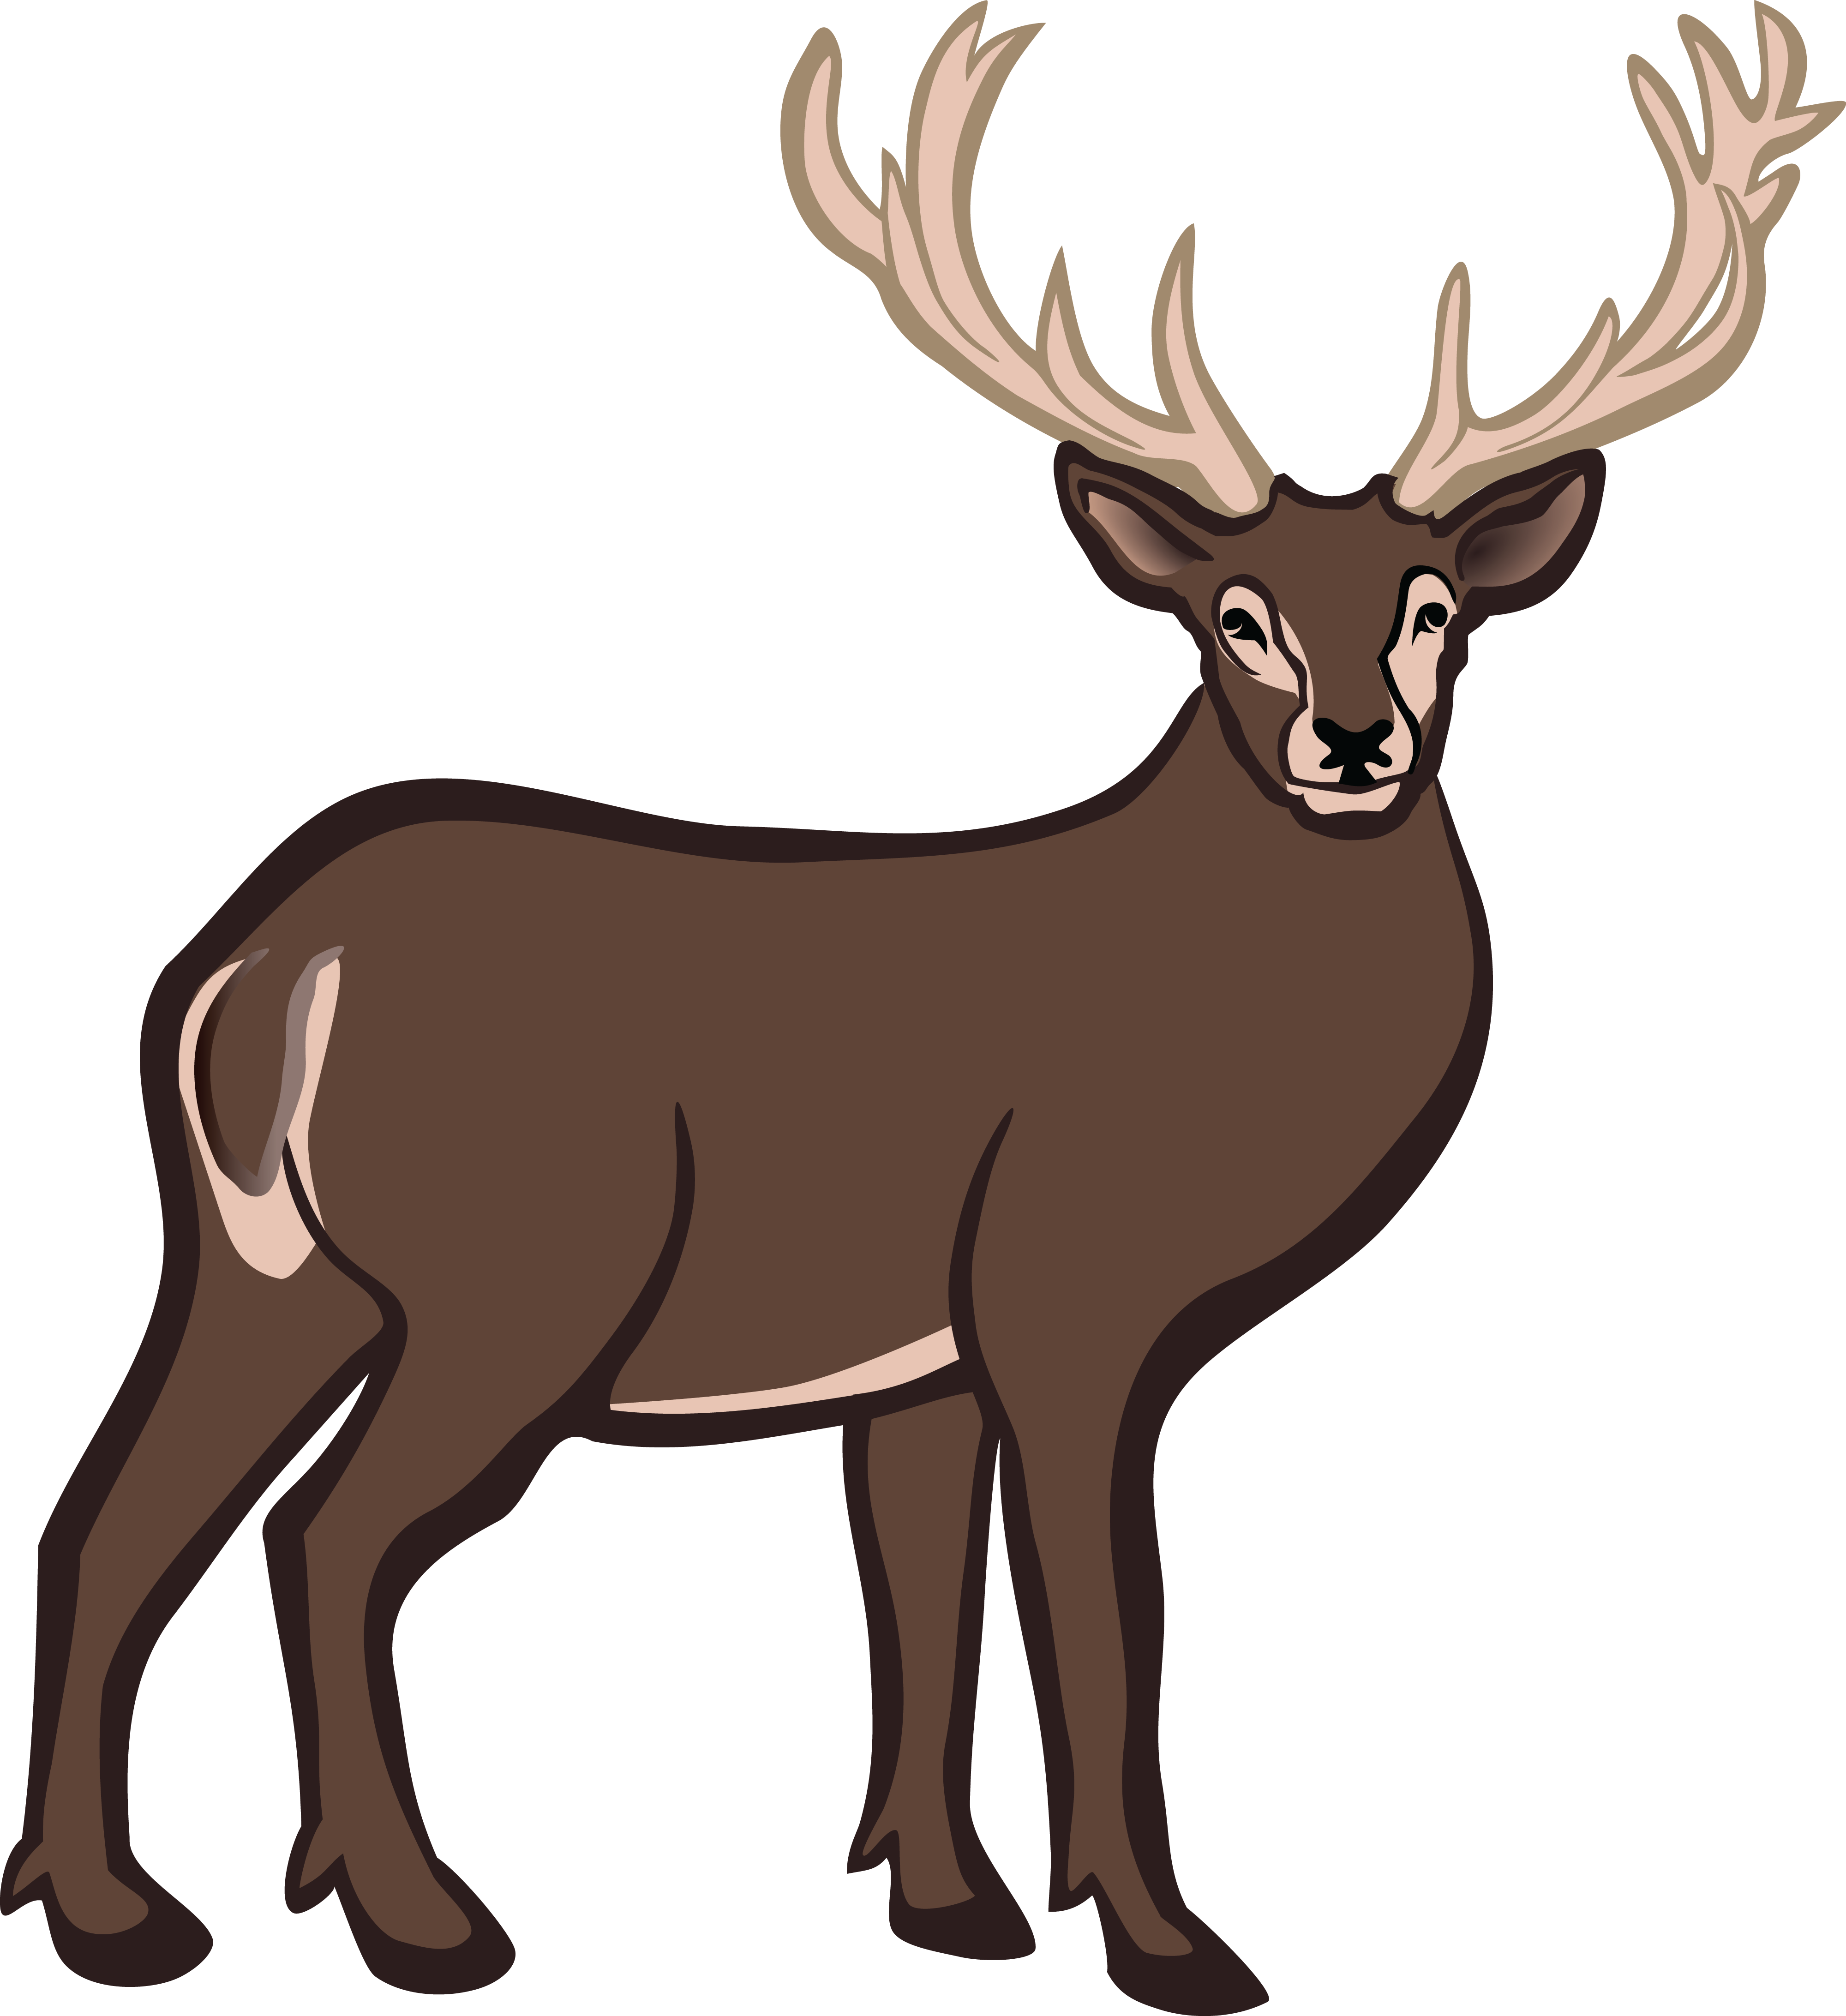 Brown clipart free collection. Reindeer antlers png image royalty free